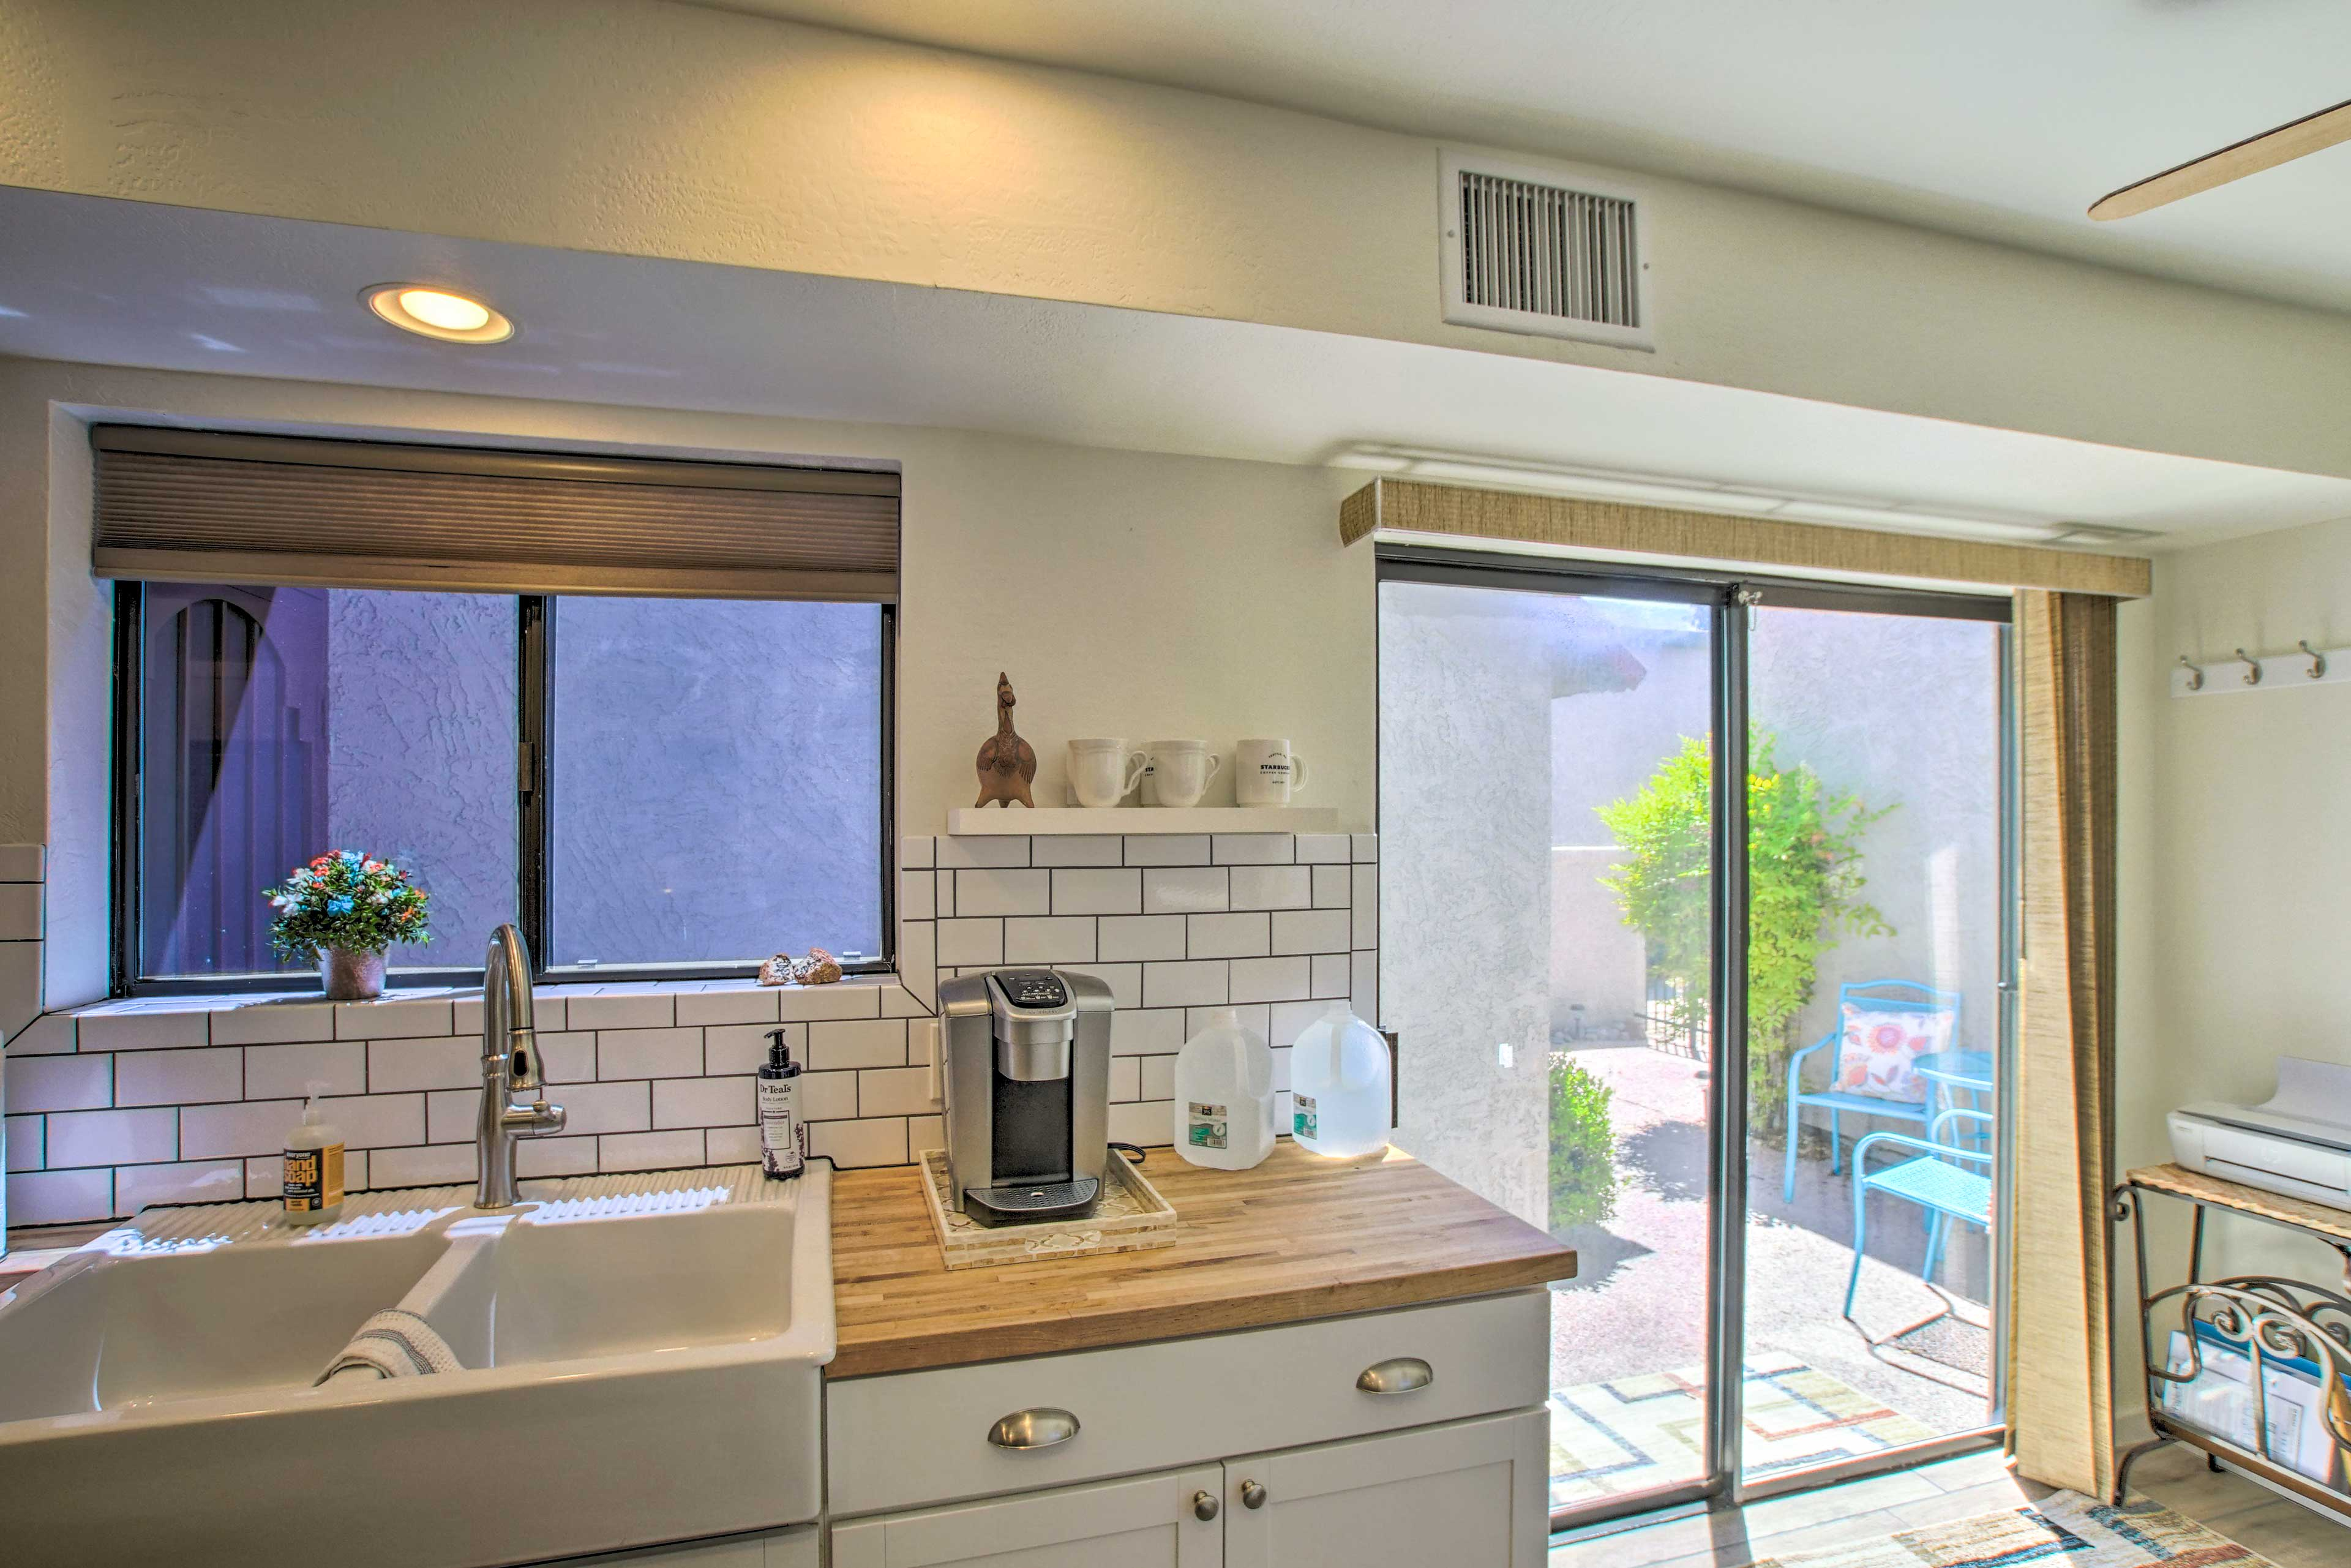 Stainless steel appliances and built-in seating complete the kitchen!